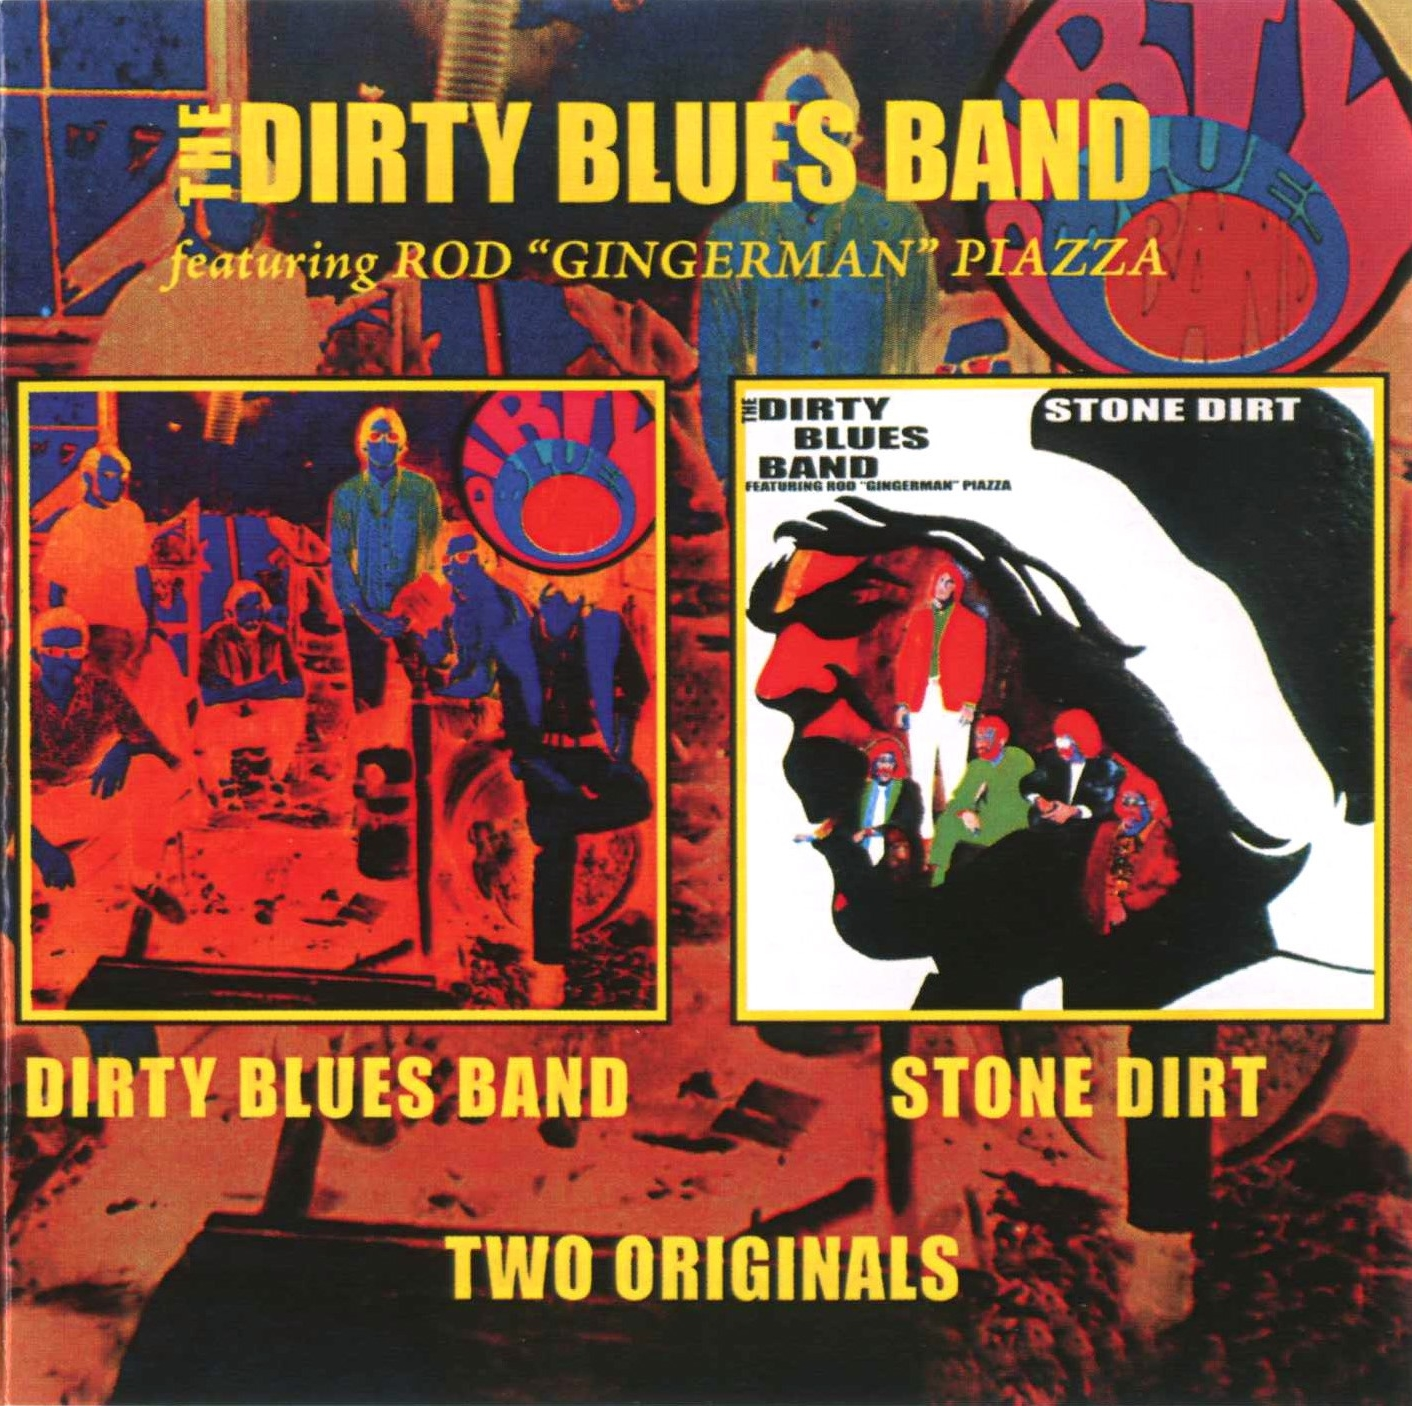 Dirty Blues Band, The - Dirty Blues Band